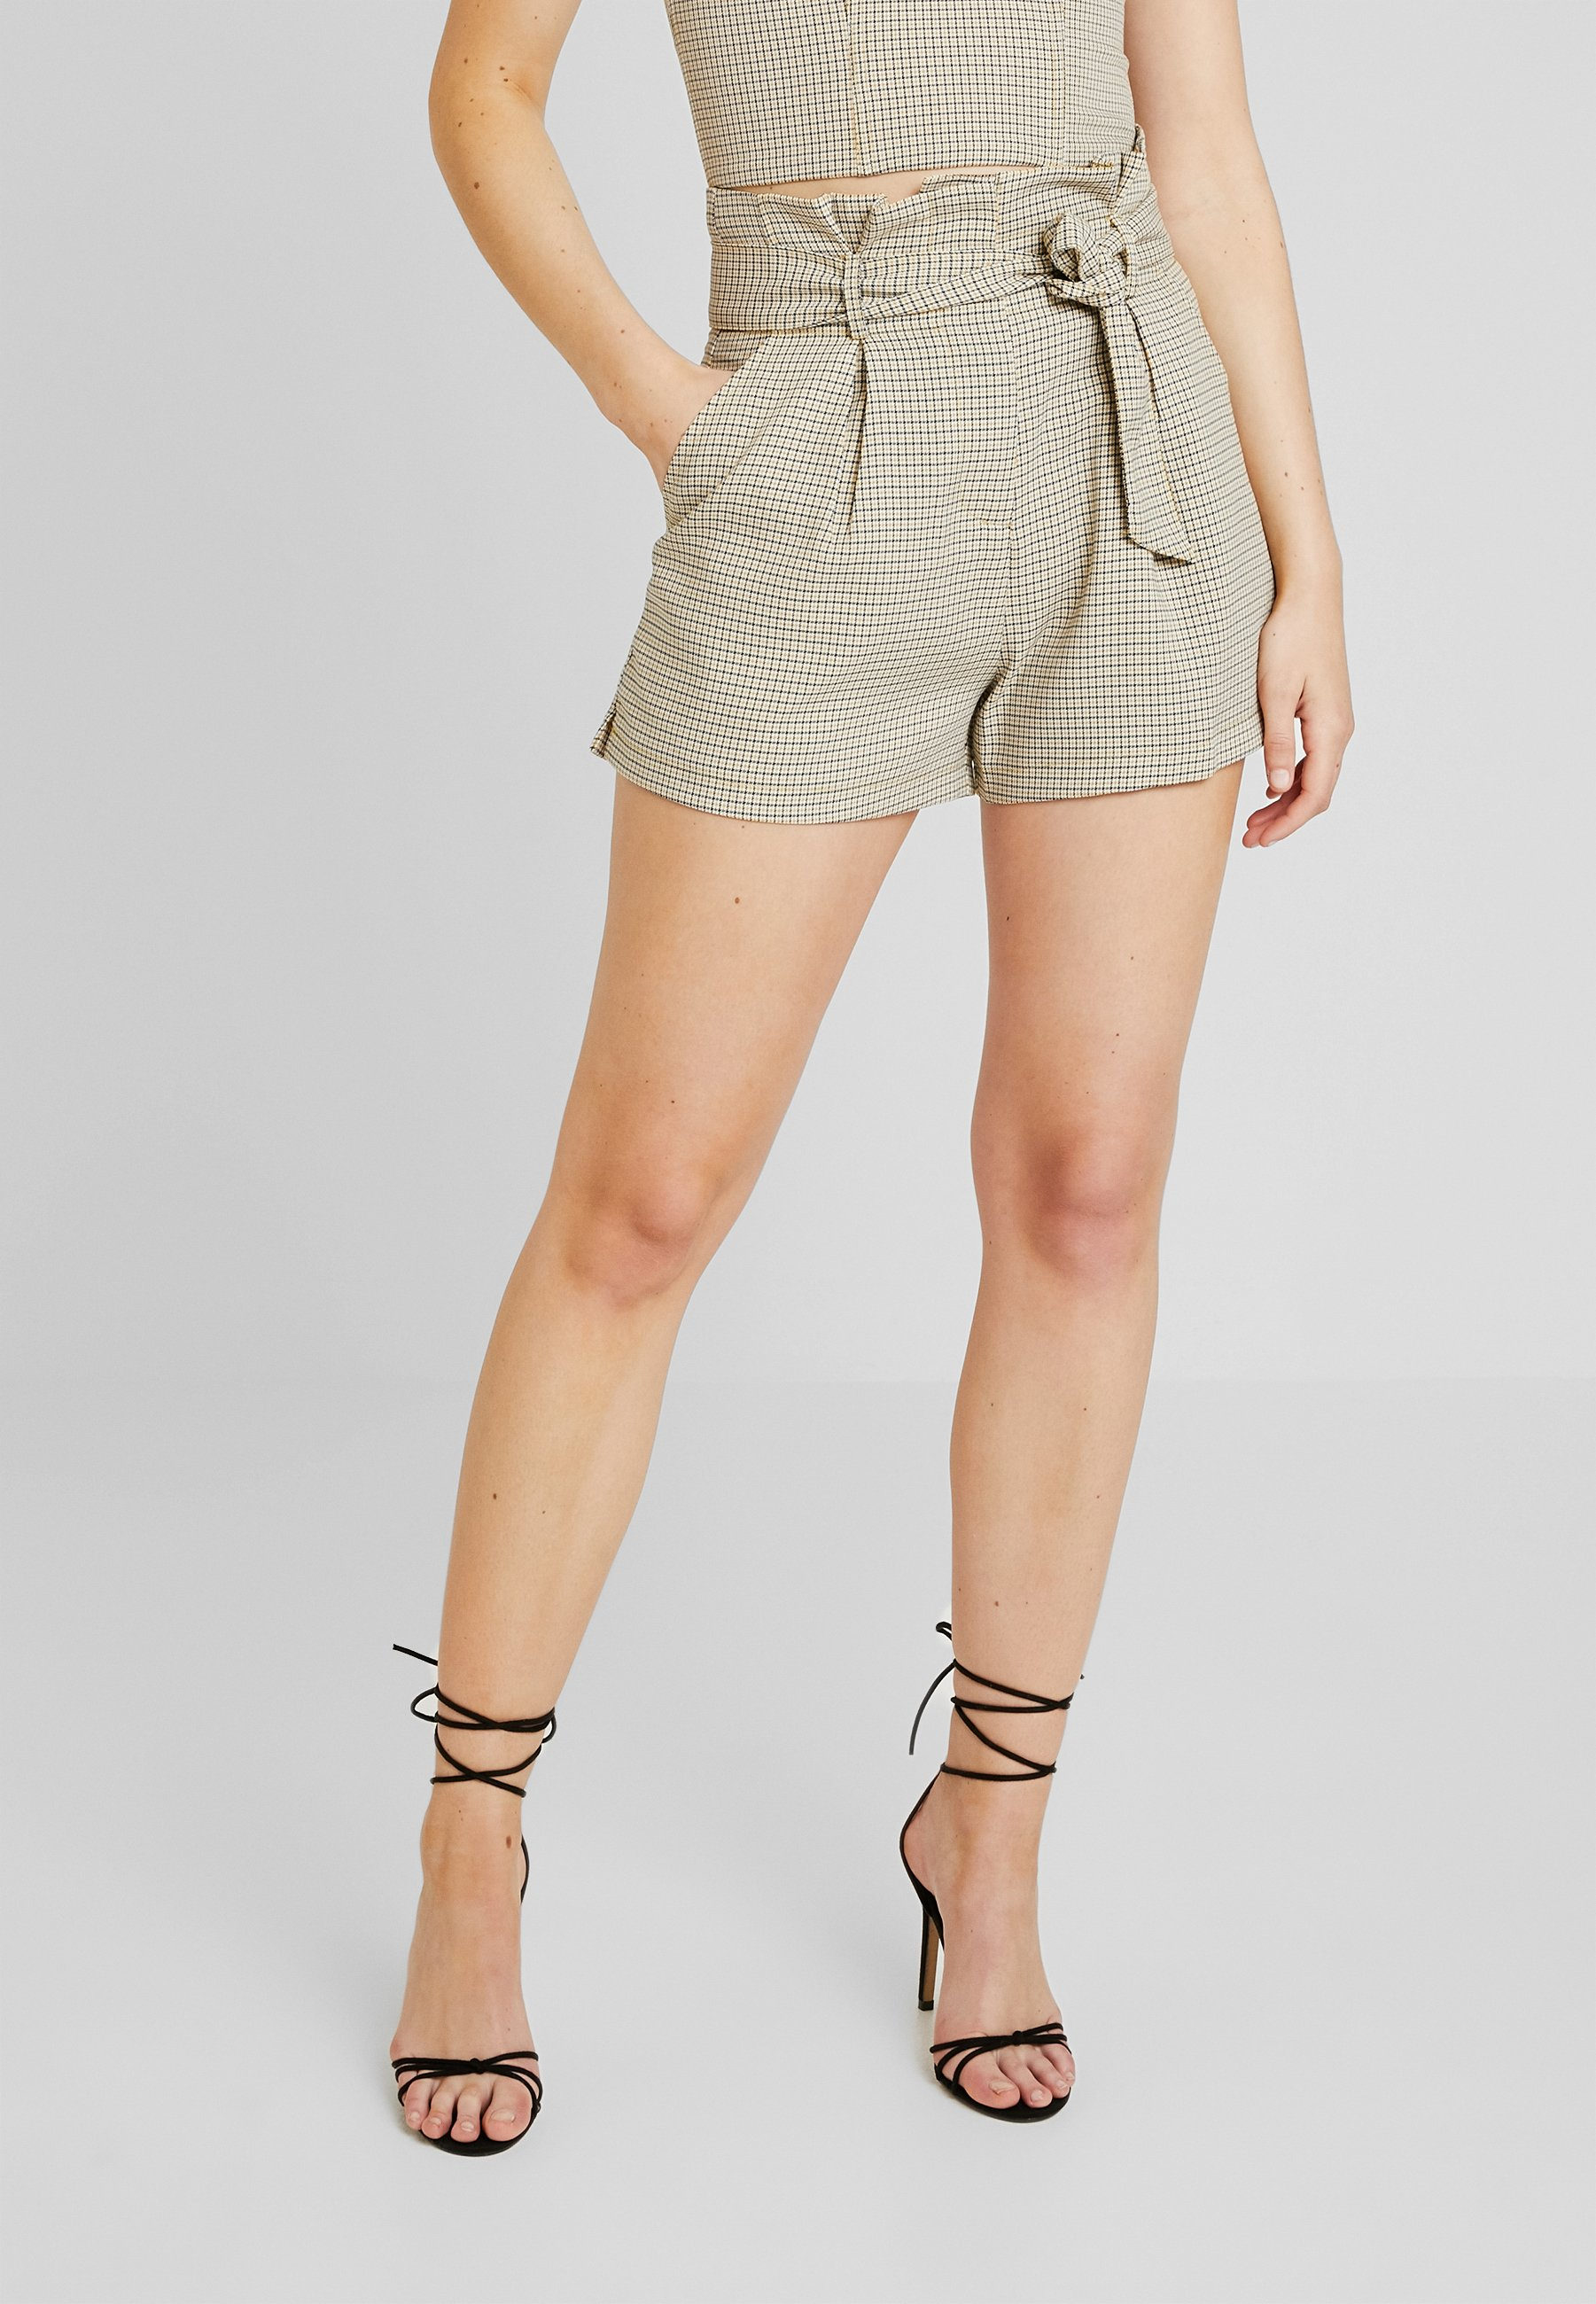 4th & Reckless EXCLUSIVE HARPER - Shorts yellow